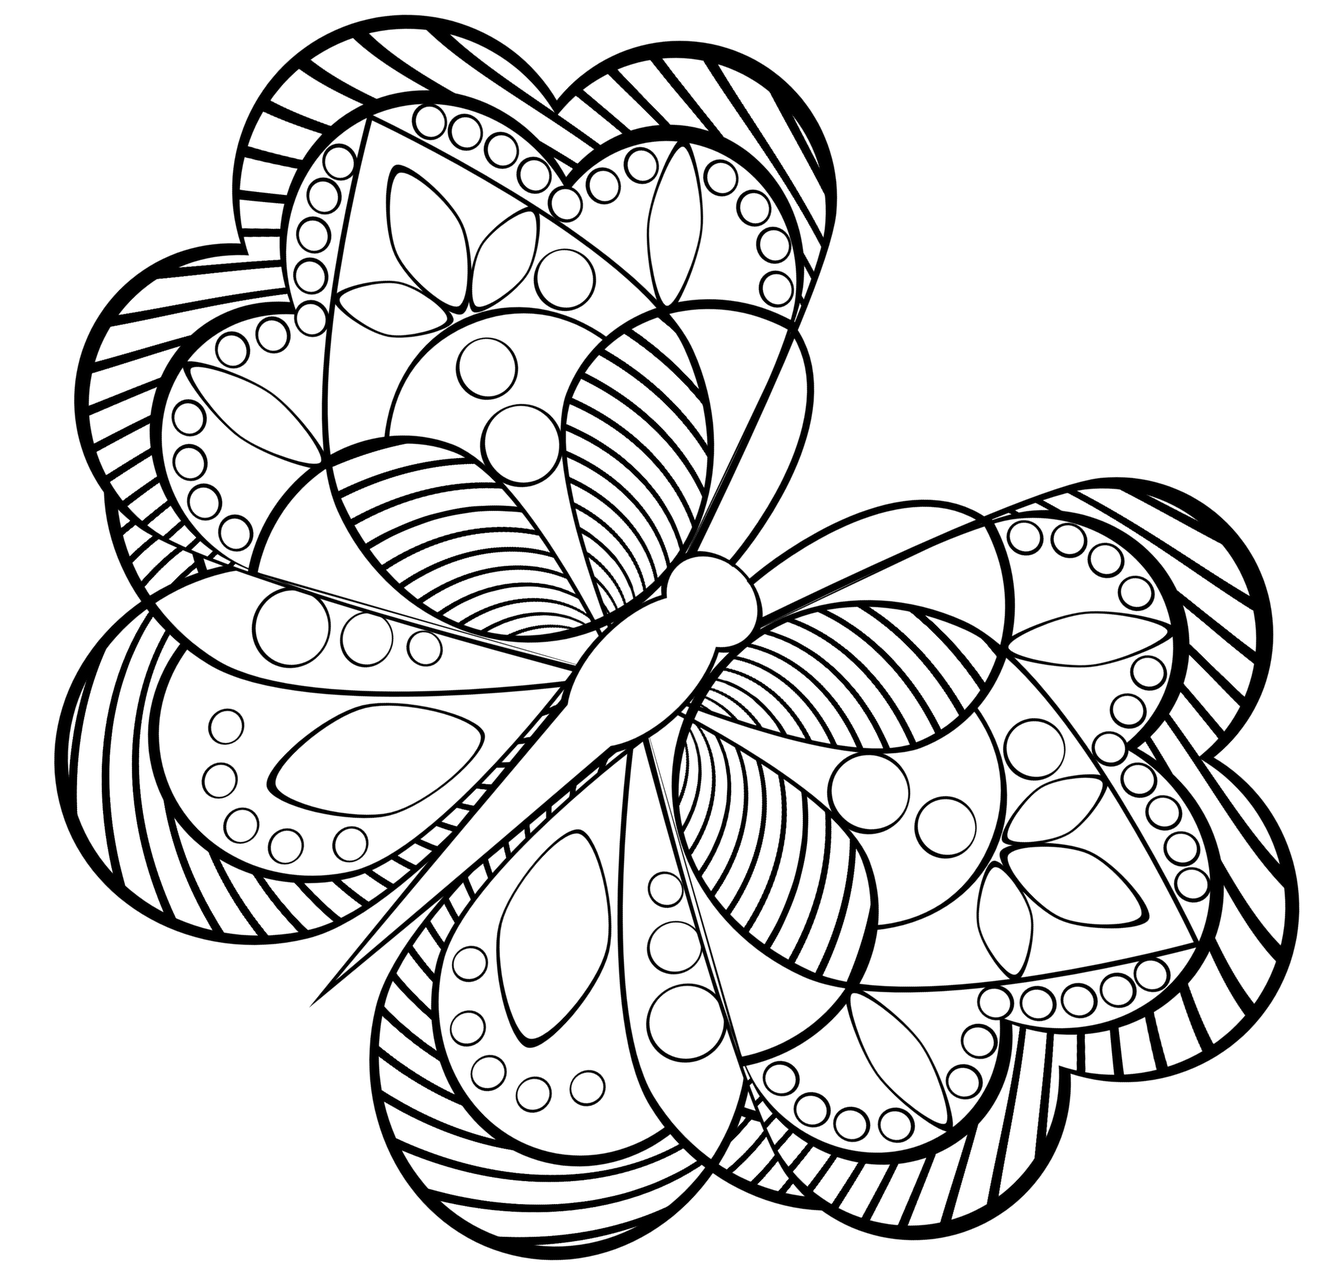 cool pictures to print best free printable coloring pages for kids and teens cool print to pictures